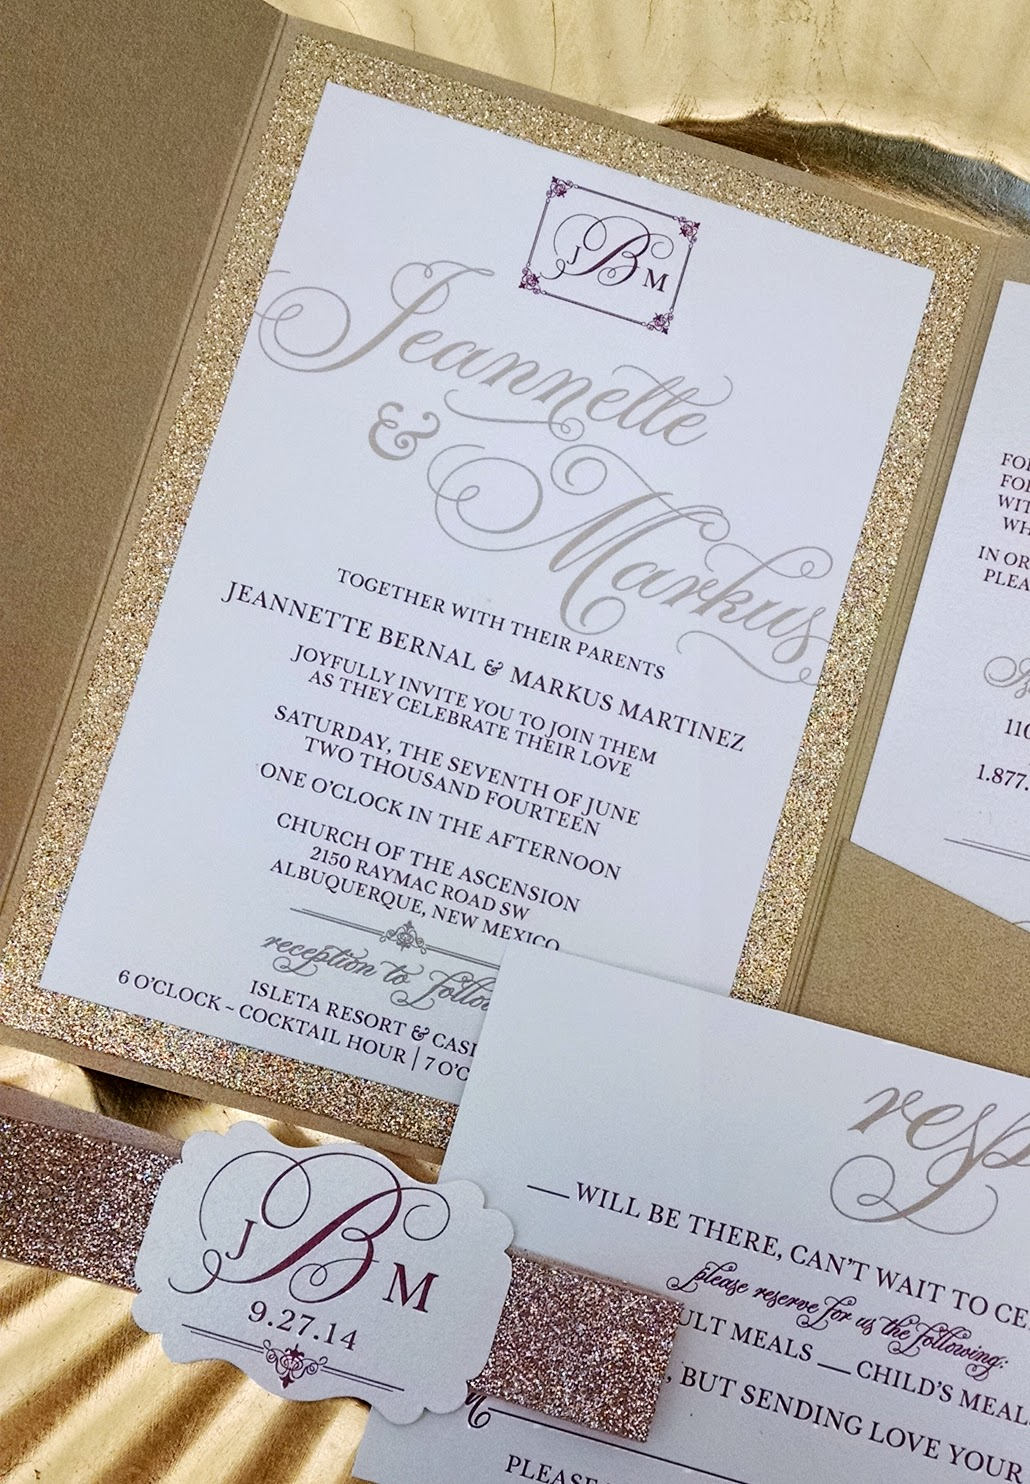 Cheap Cardstock For Wedding Invitations : ... : Glitter Cardstock Galore! Invitations Glitter Cardstock Galorehtml